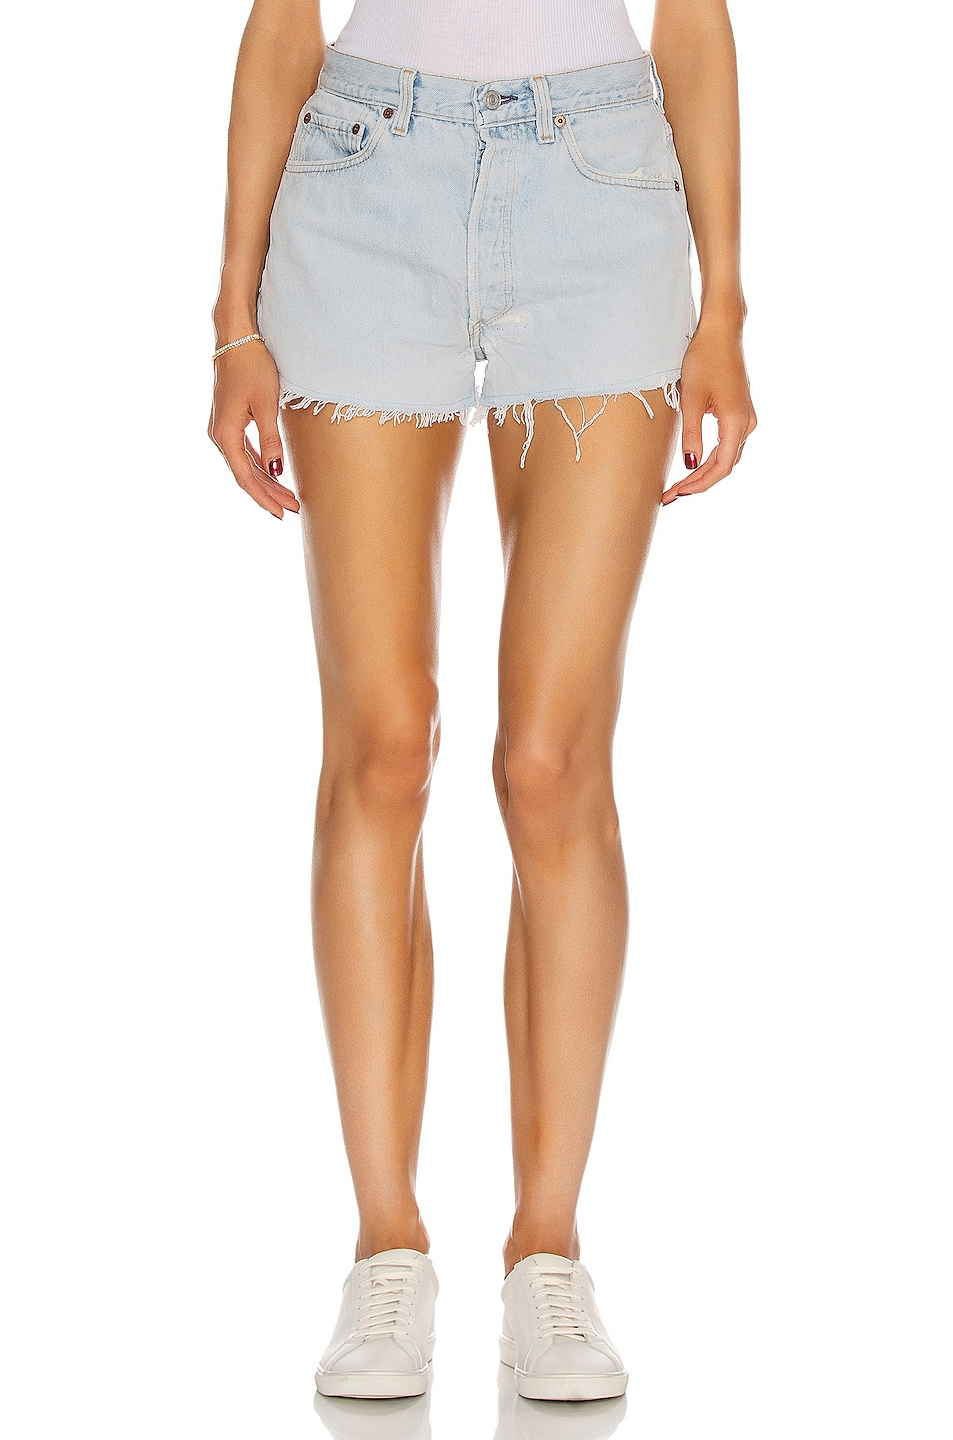 Clean Denim Cut Off Shorts Denim 2 in Blue from Antonioli